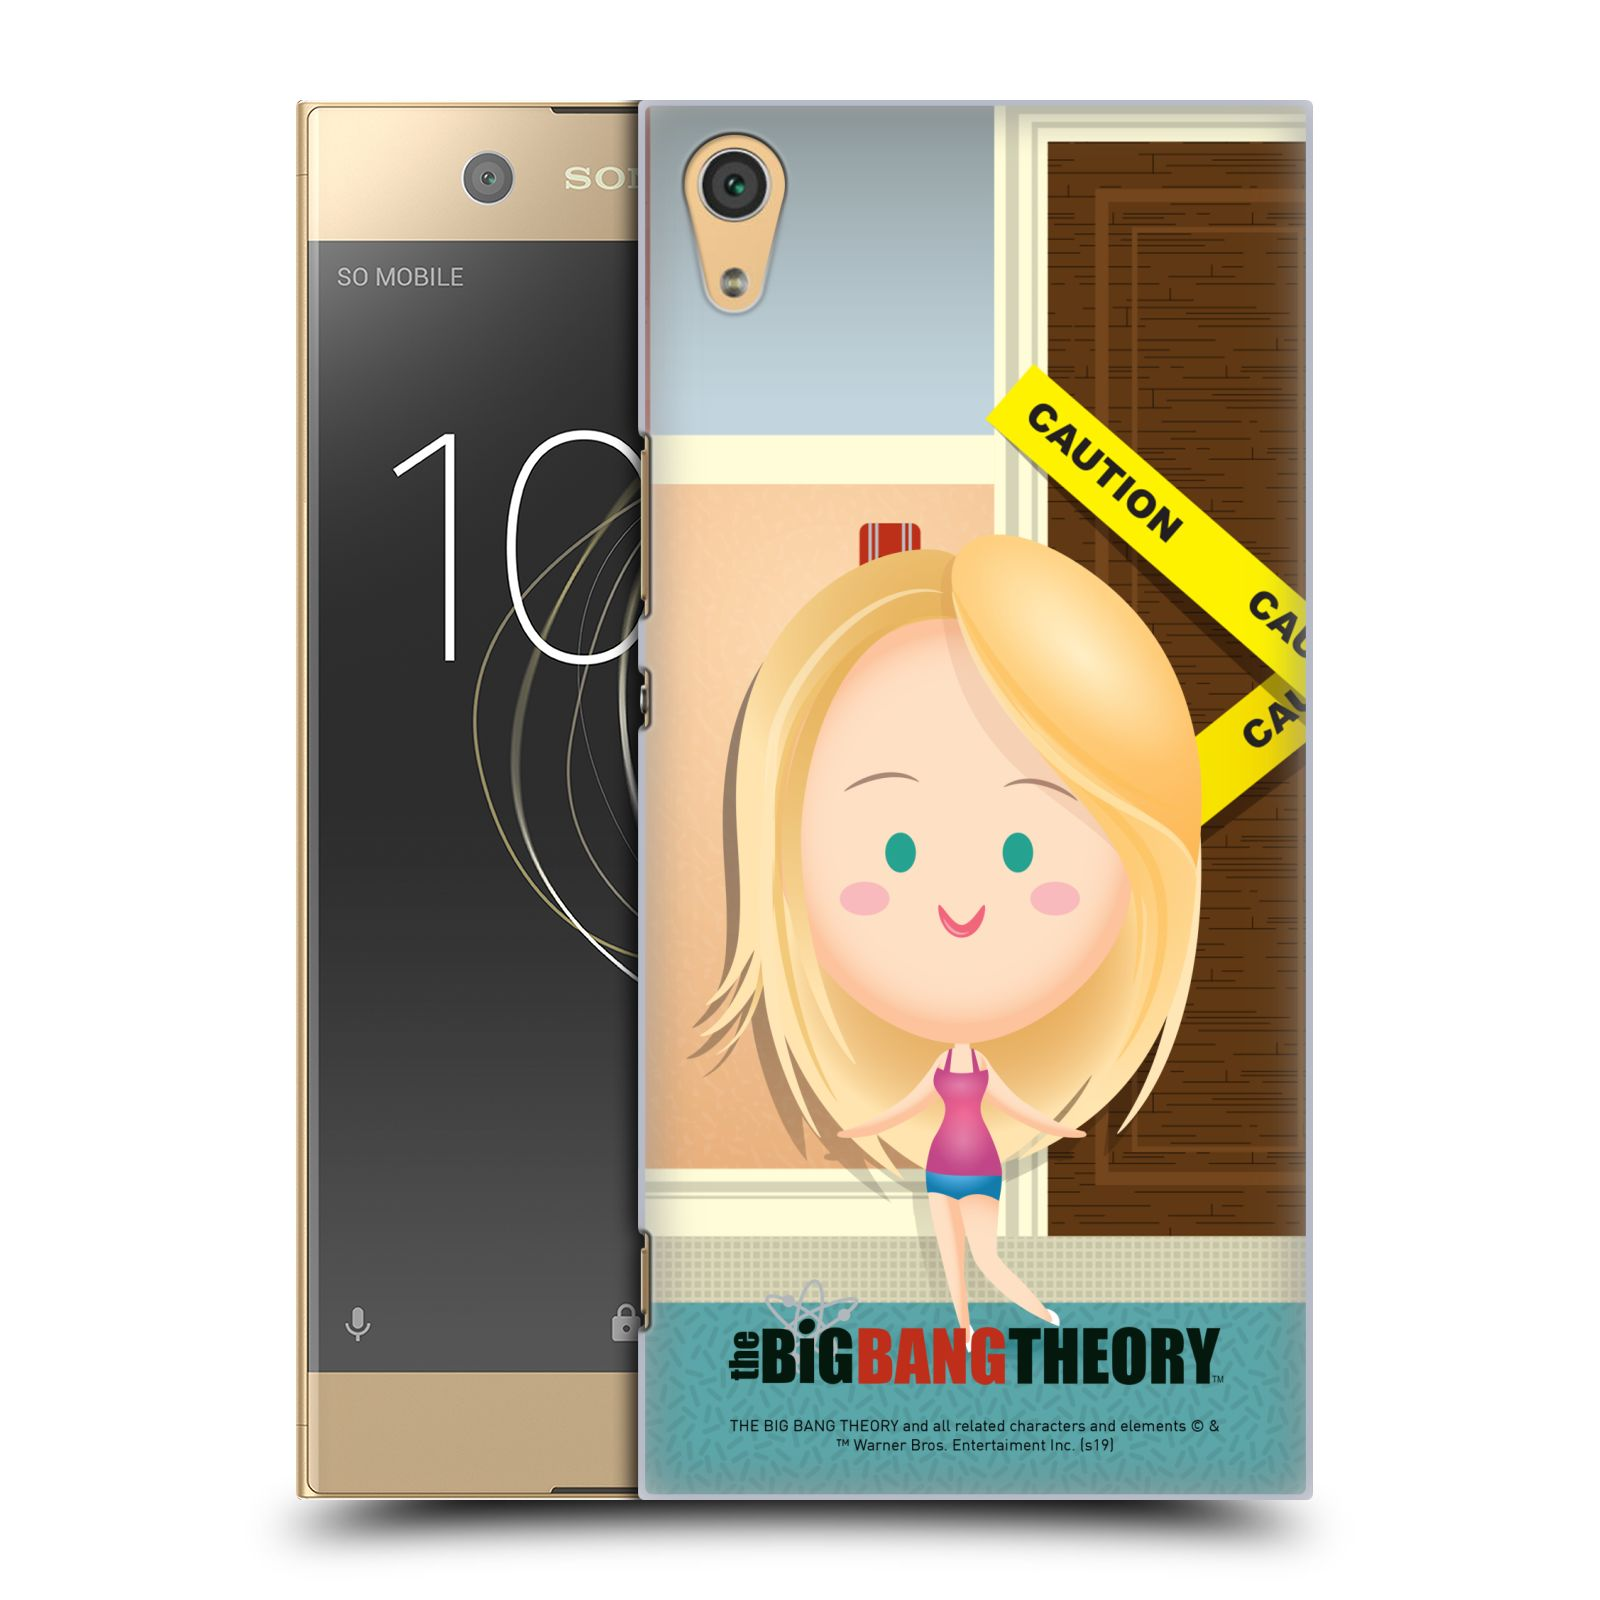 Pouzdro na mobil Sony Xperia XA1 ULTRA - HEAD CASE - Big Bang Theory - kreslená Penny